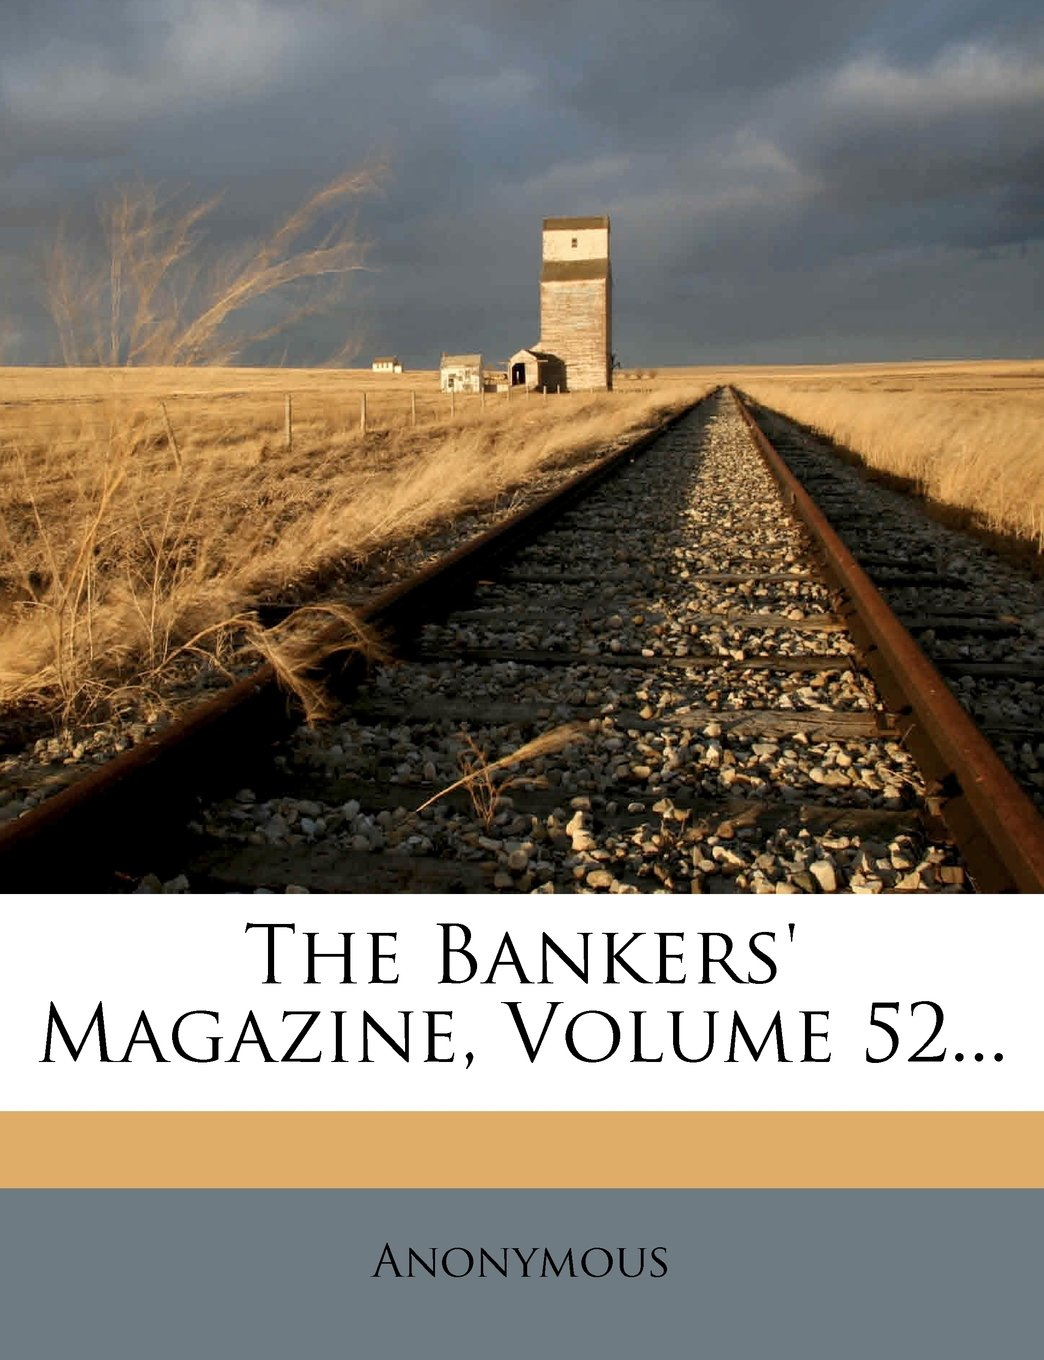 The Bankers' Magazine, Volume 52... Text fb2 book